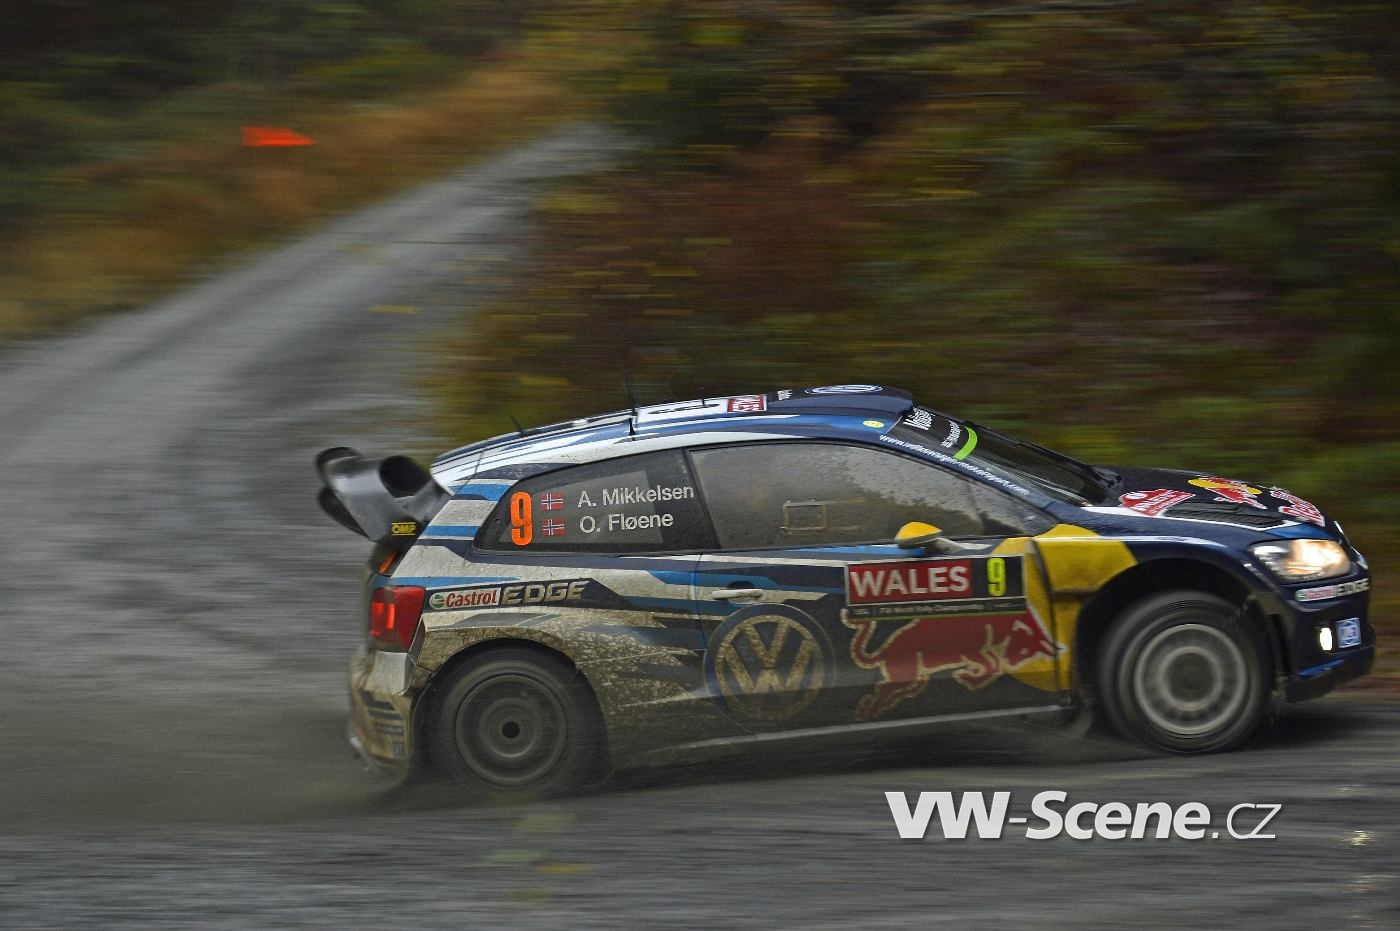 Andreas Mikkelsen (NOR), Ola Fløene (NOR) Volkswagen Polo R WRC (2015) WRC Rally Great Britain 2015